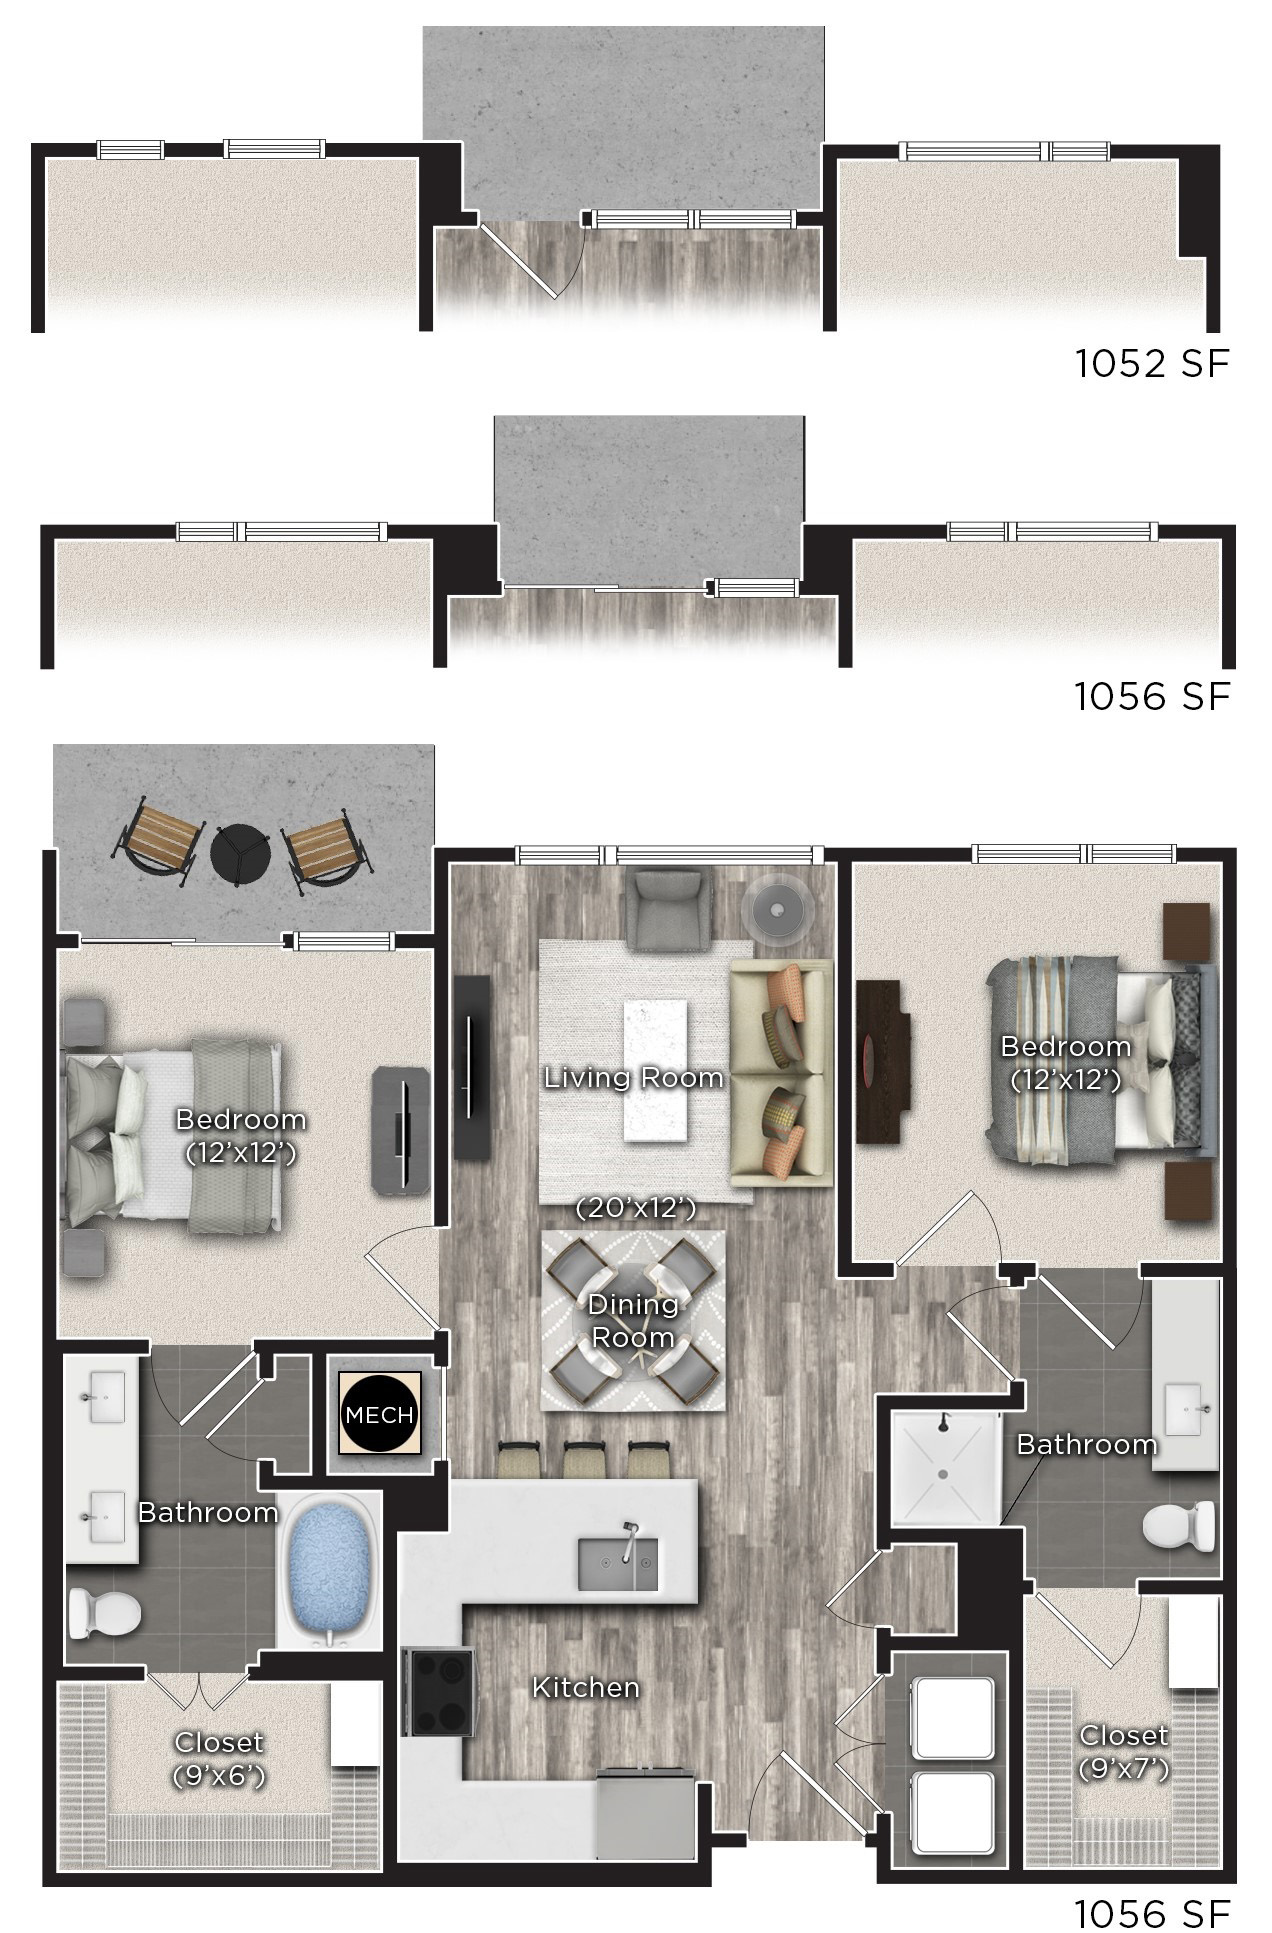 Tens on West - Floorplan - N